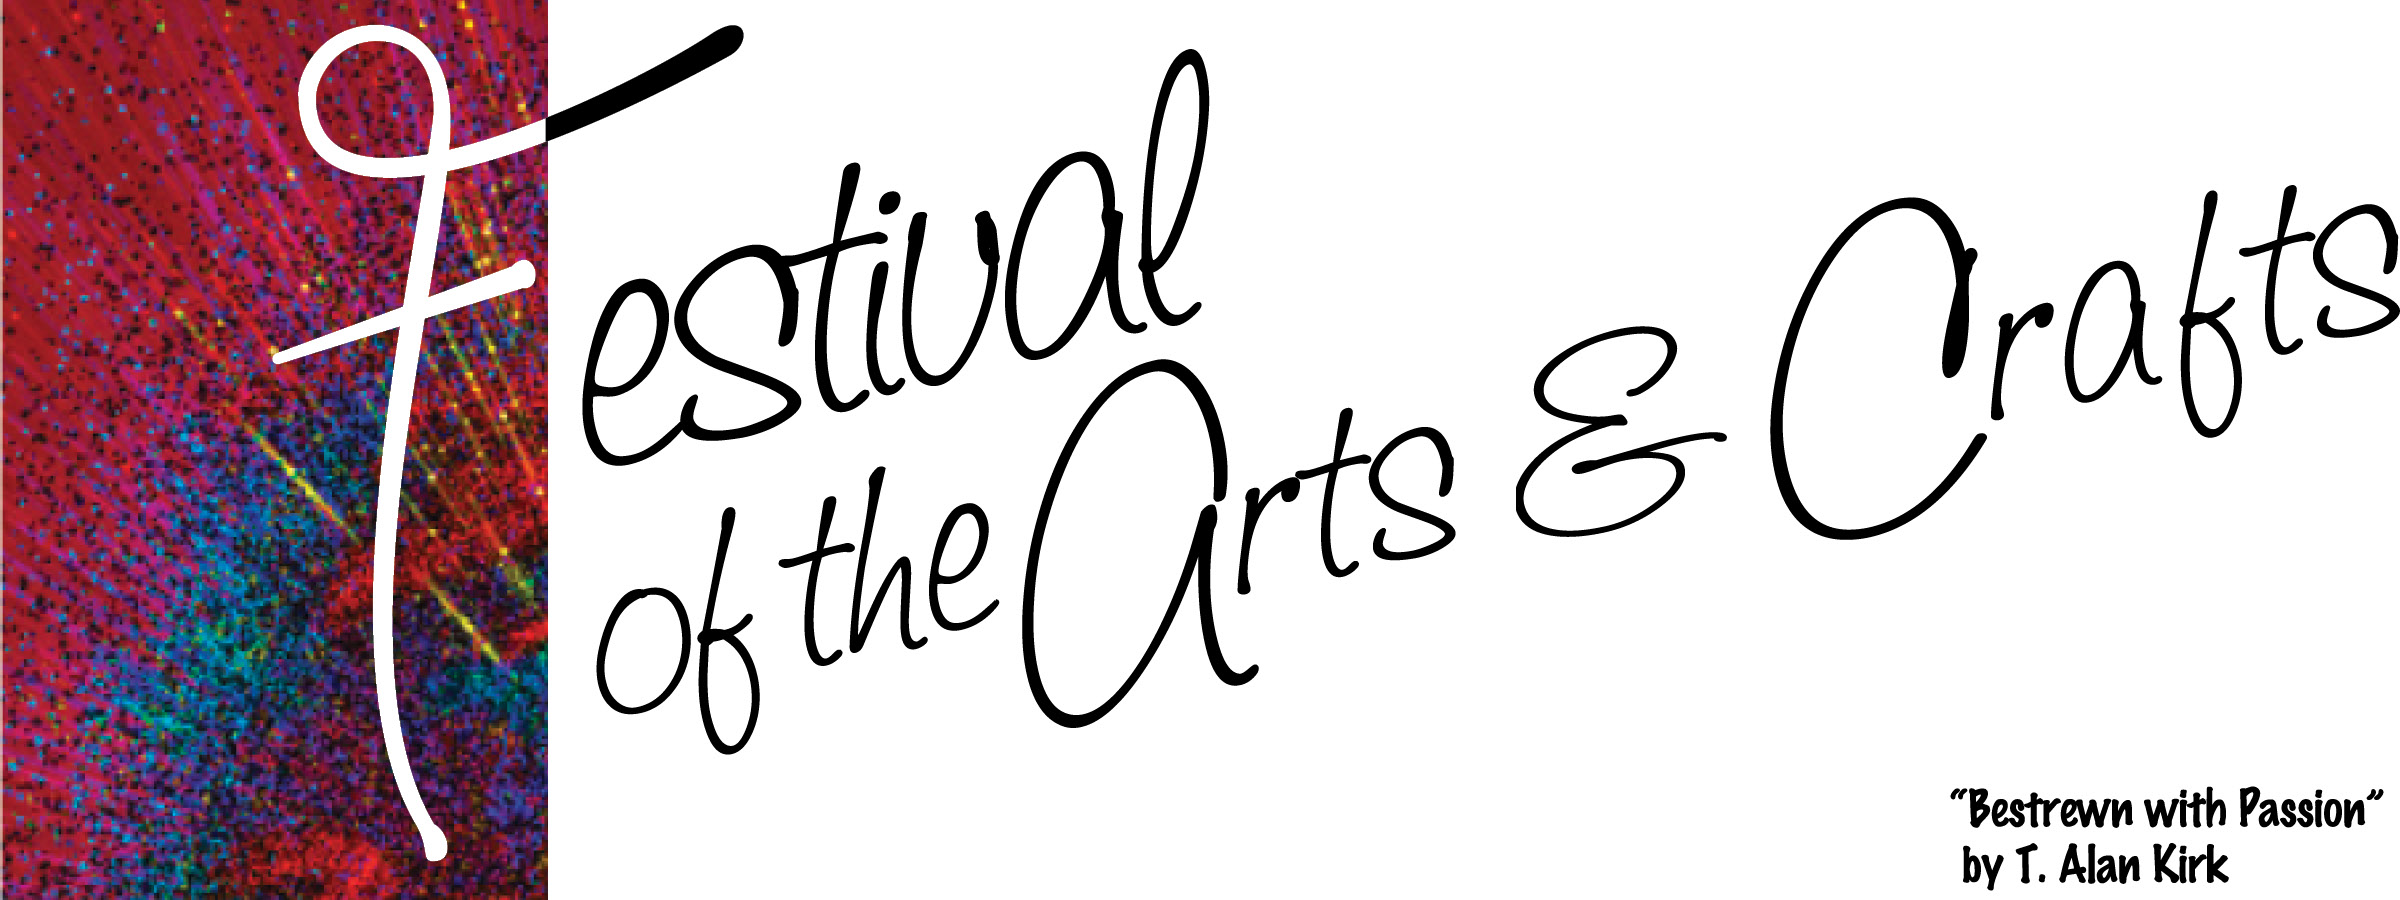 Festival of the Arts & Crafts Logo with colorful paint splatter background